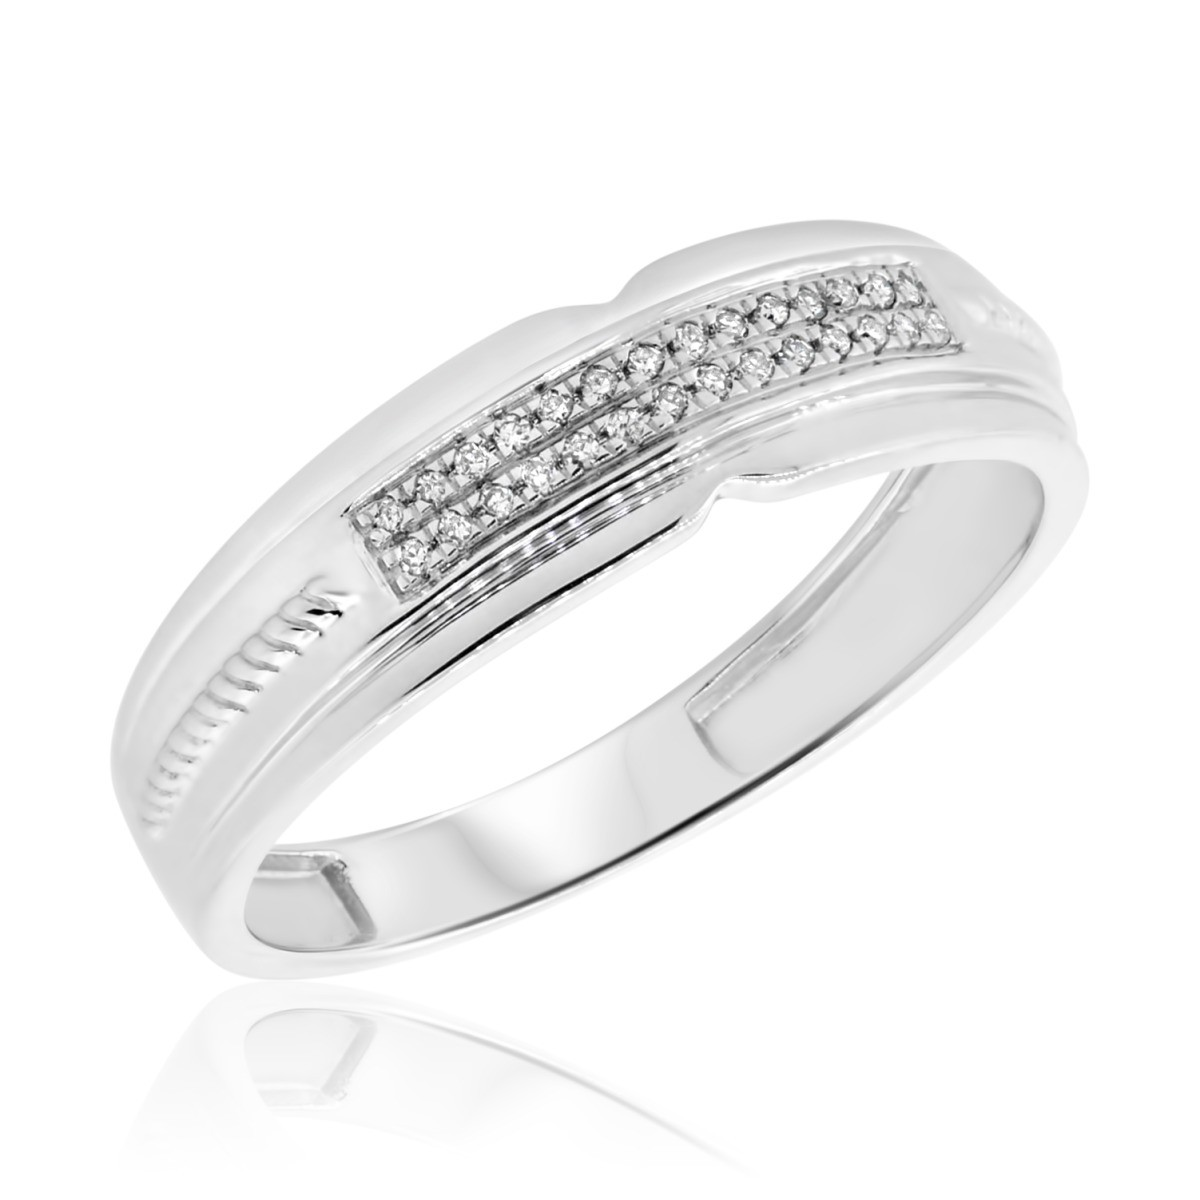 1/10 Carat T.W. Diamond Mens Wedding Band 10K White Gold